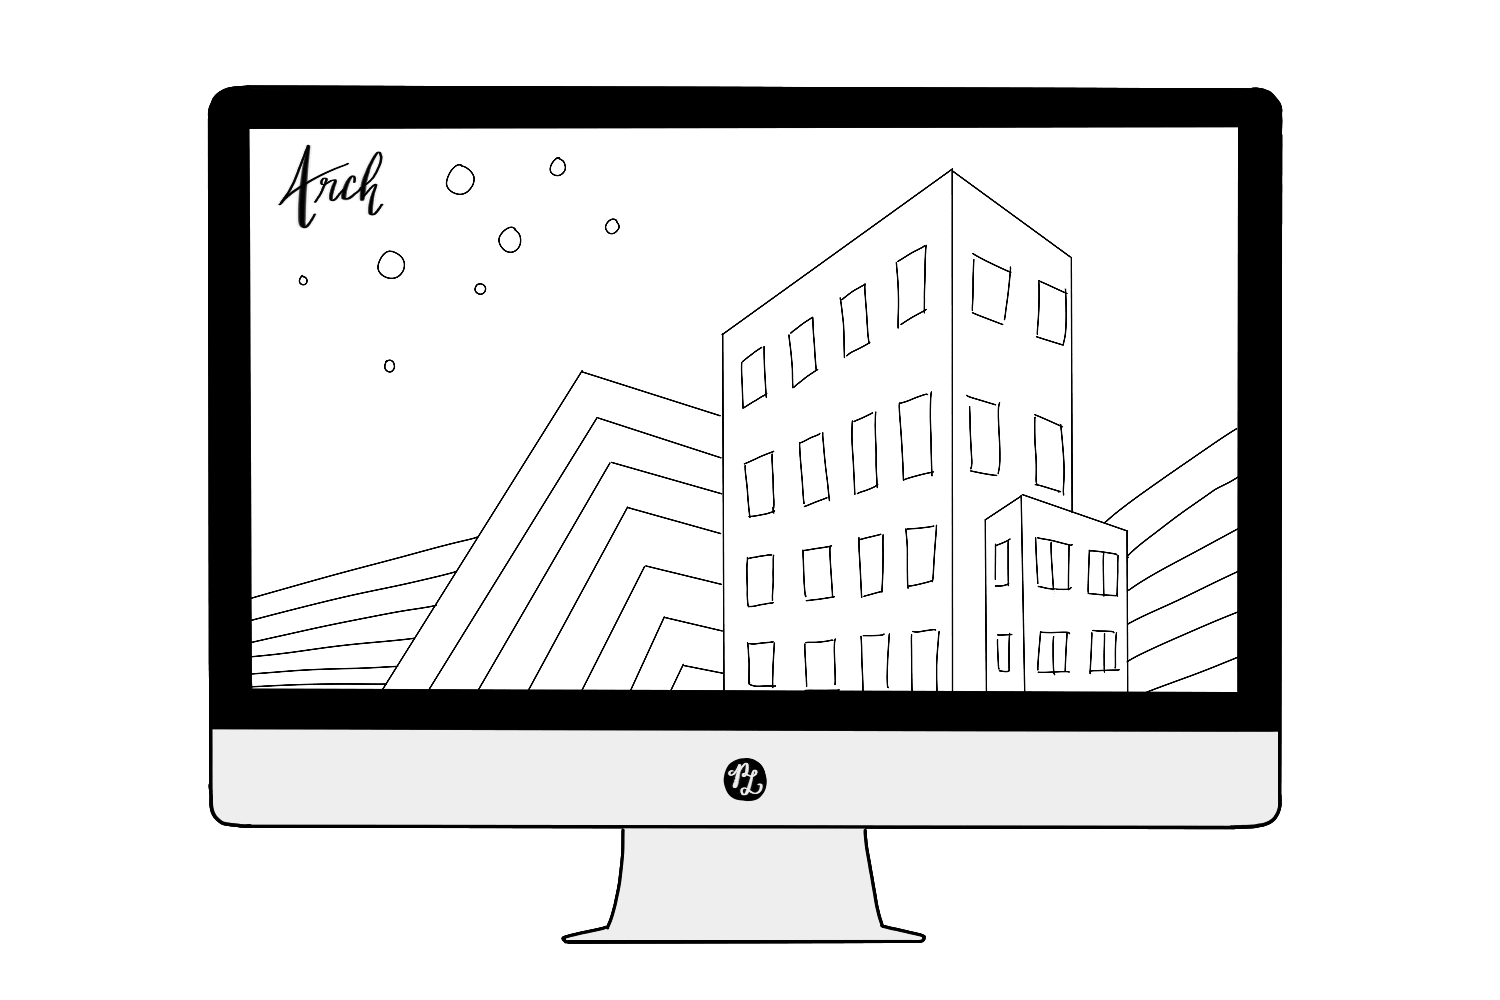 Big Image Template — PACIFIC LETTERS – How to choose the Right Squarespace Template based on 7 Website Categories http://pacificletters.com/news/squarespace-template-choose-the-right-one